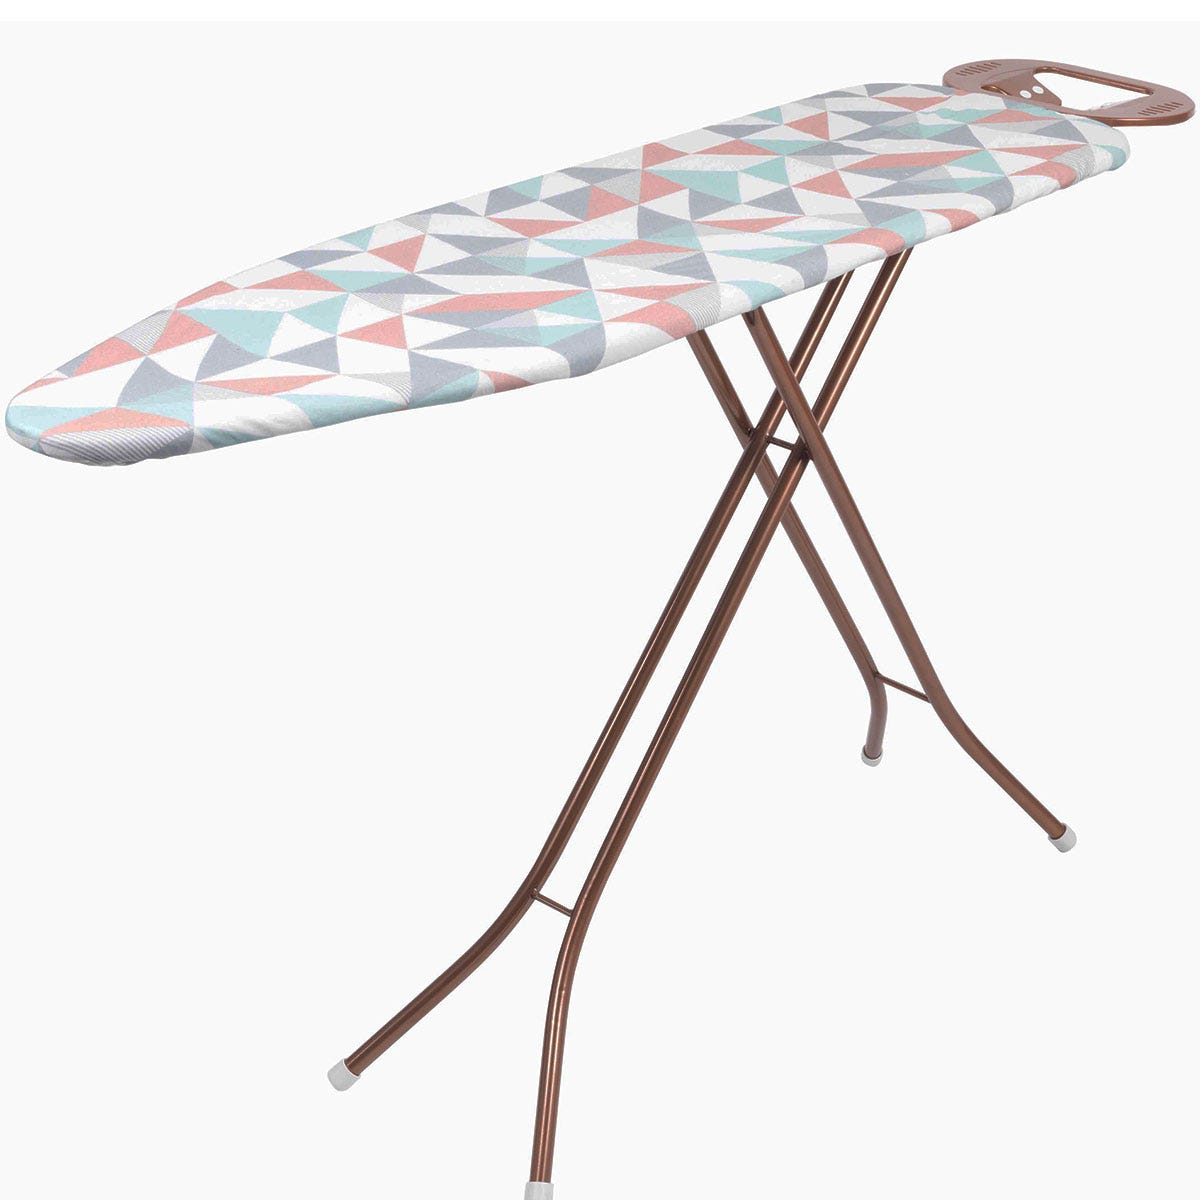 Image of Beldray Glisten Foldable Ironing Board - Rose Gold